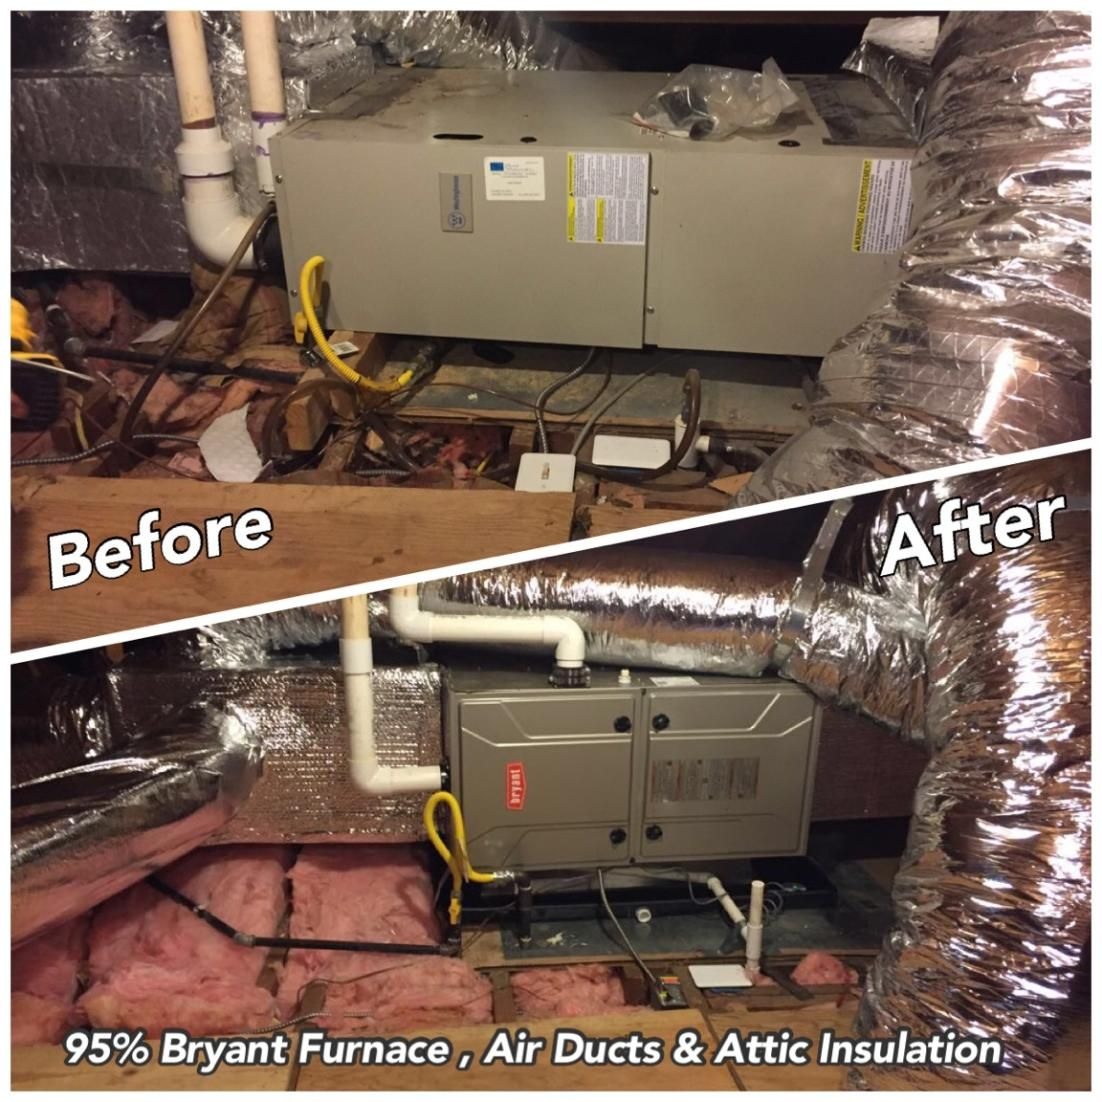 Garage Attic Air Conditioner Before After Photos Of A Bryant Furnace Air Ducts And Attic